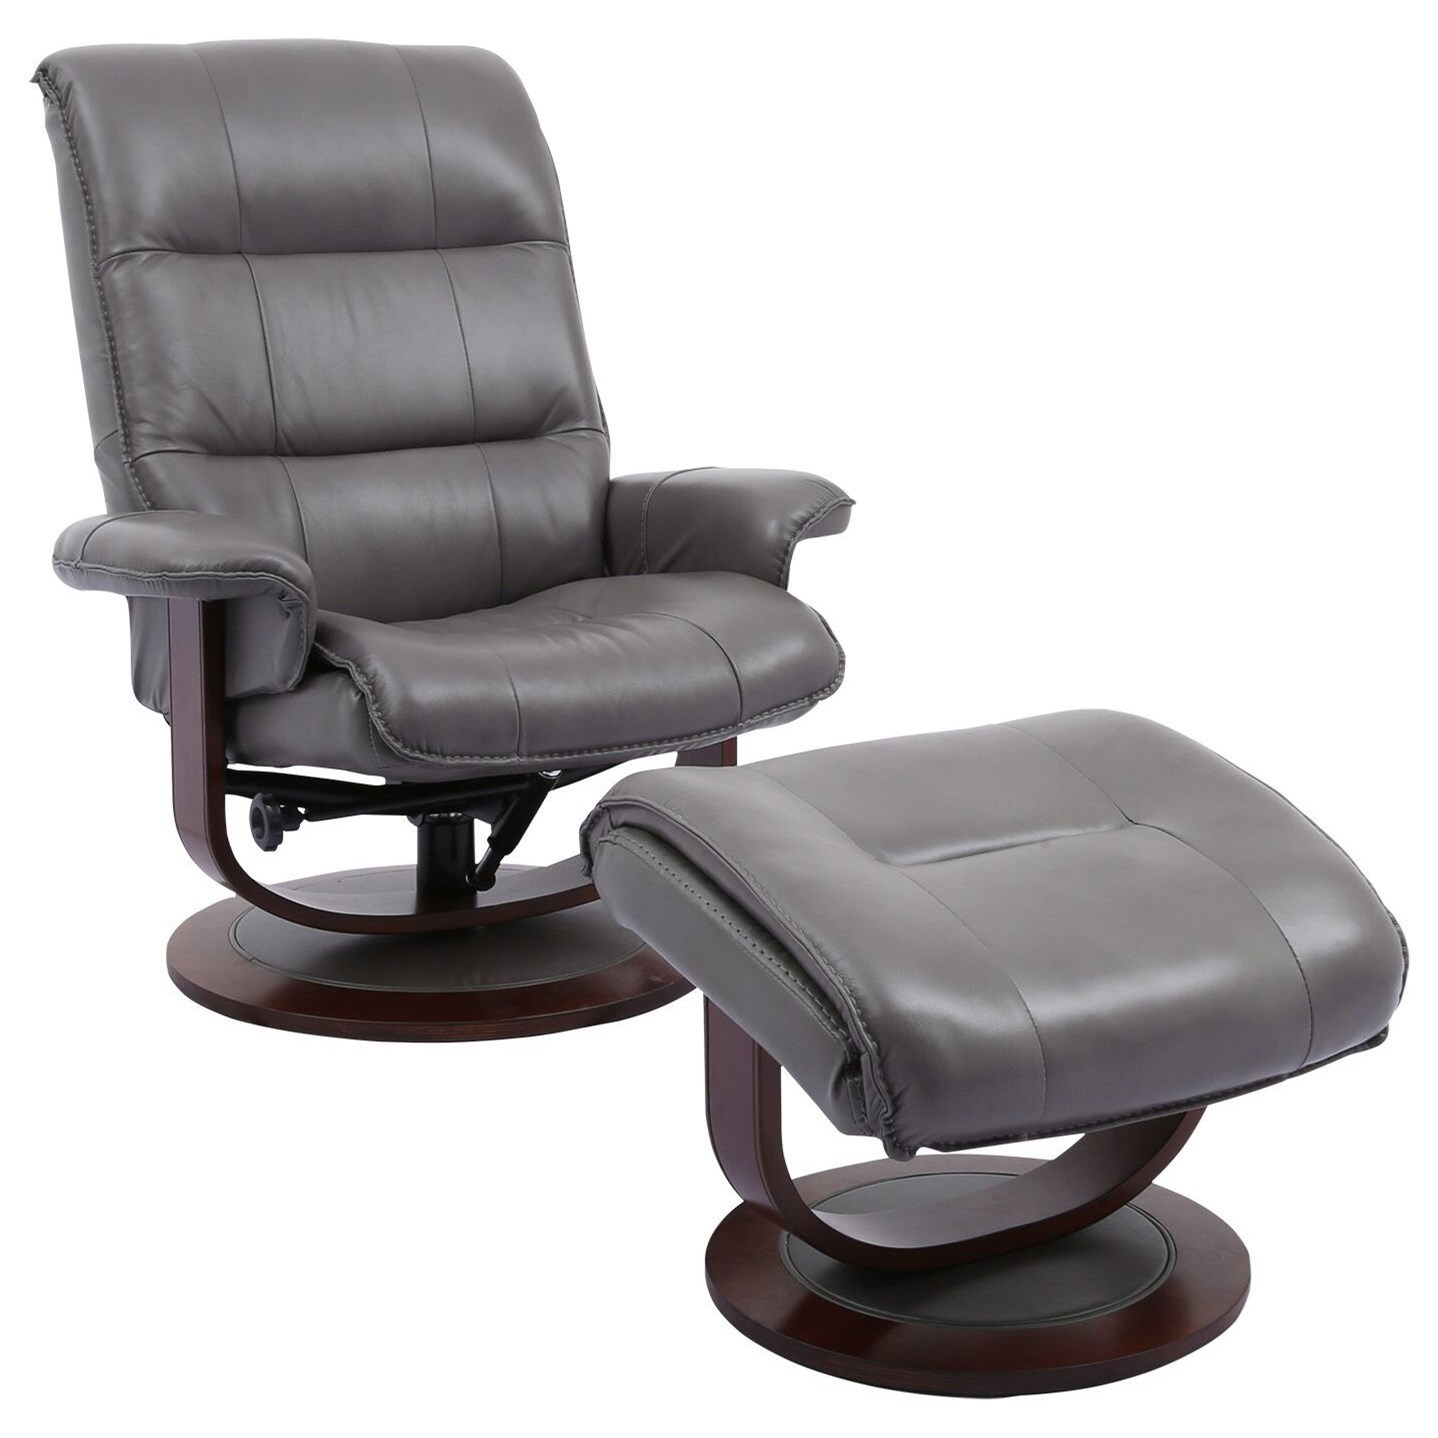 Knight Swivel Recliner & Ottoman by Parker Living at Zak's Home